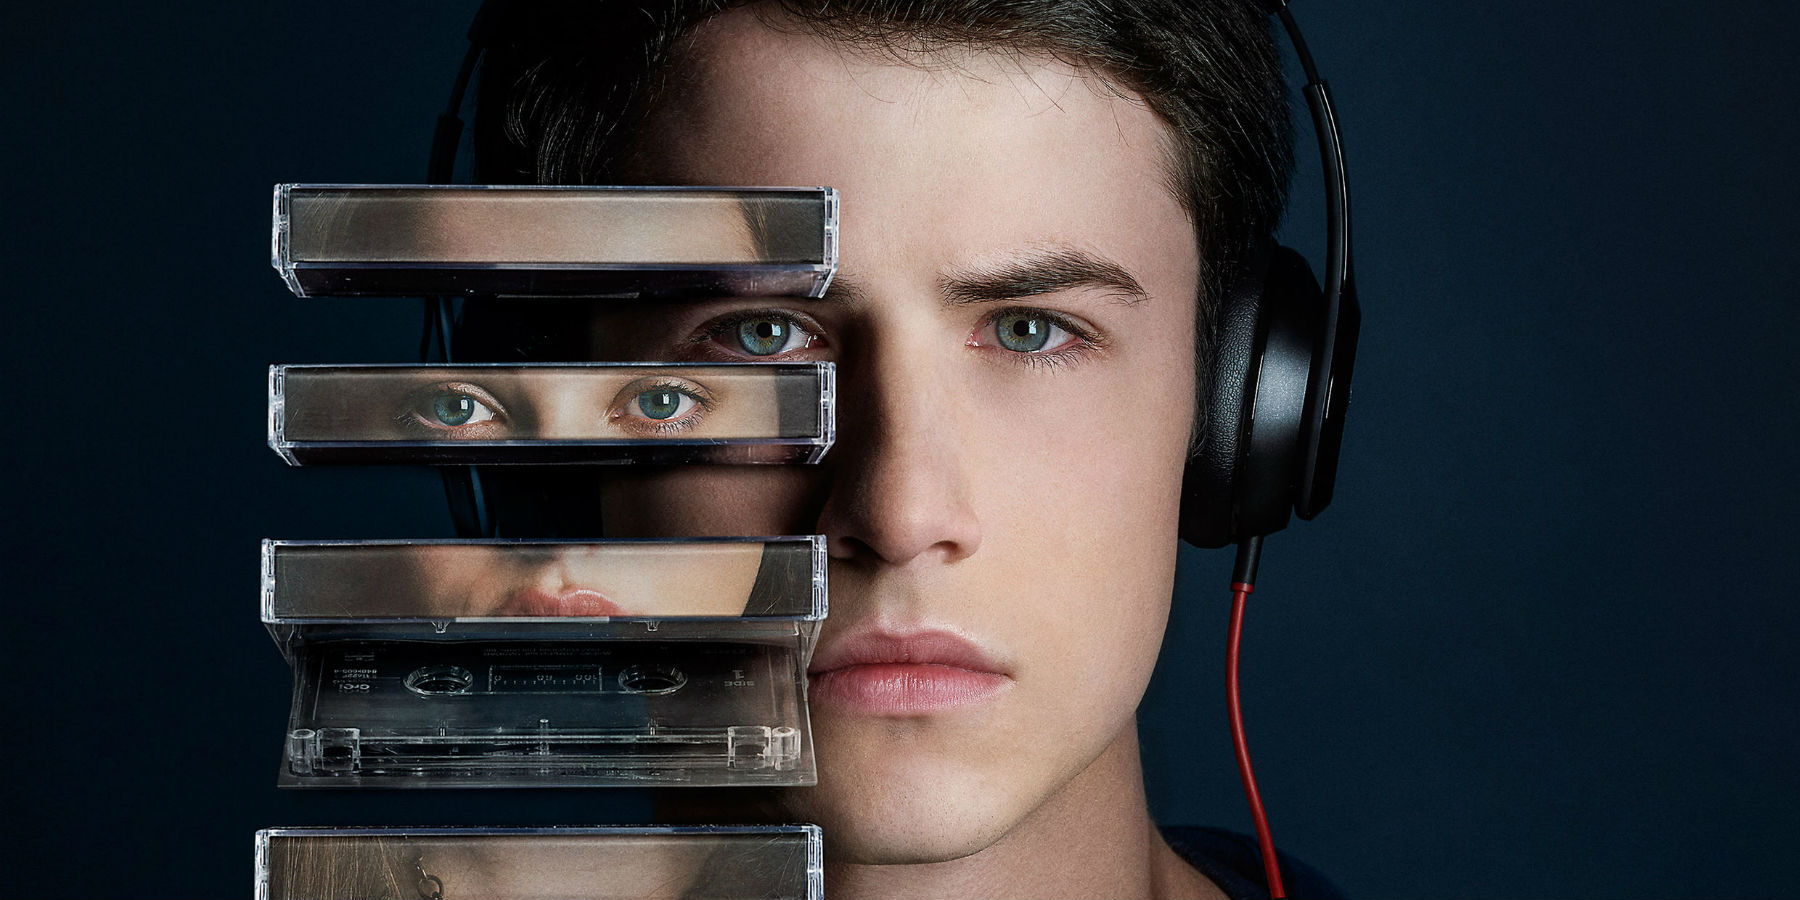 A close-up of Clay's face wearing headphones and listening to tapes in a promotional poster for 13 Reasons Why